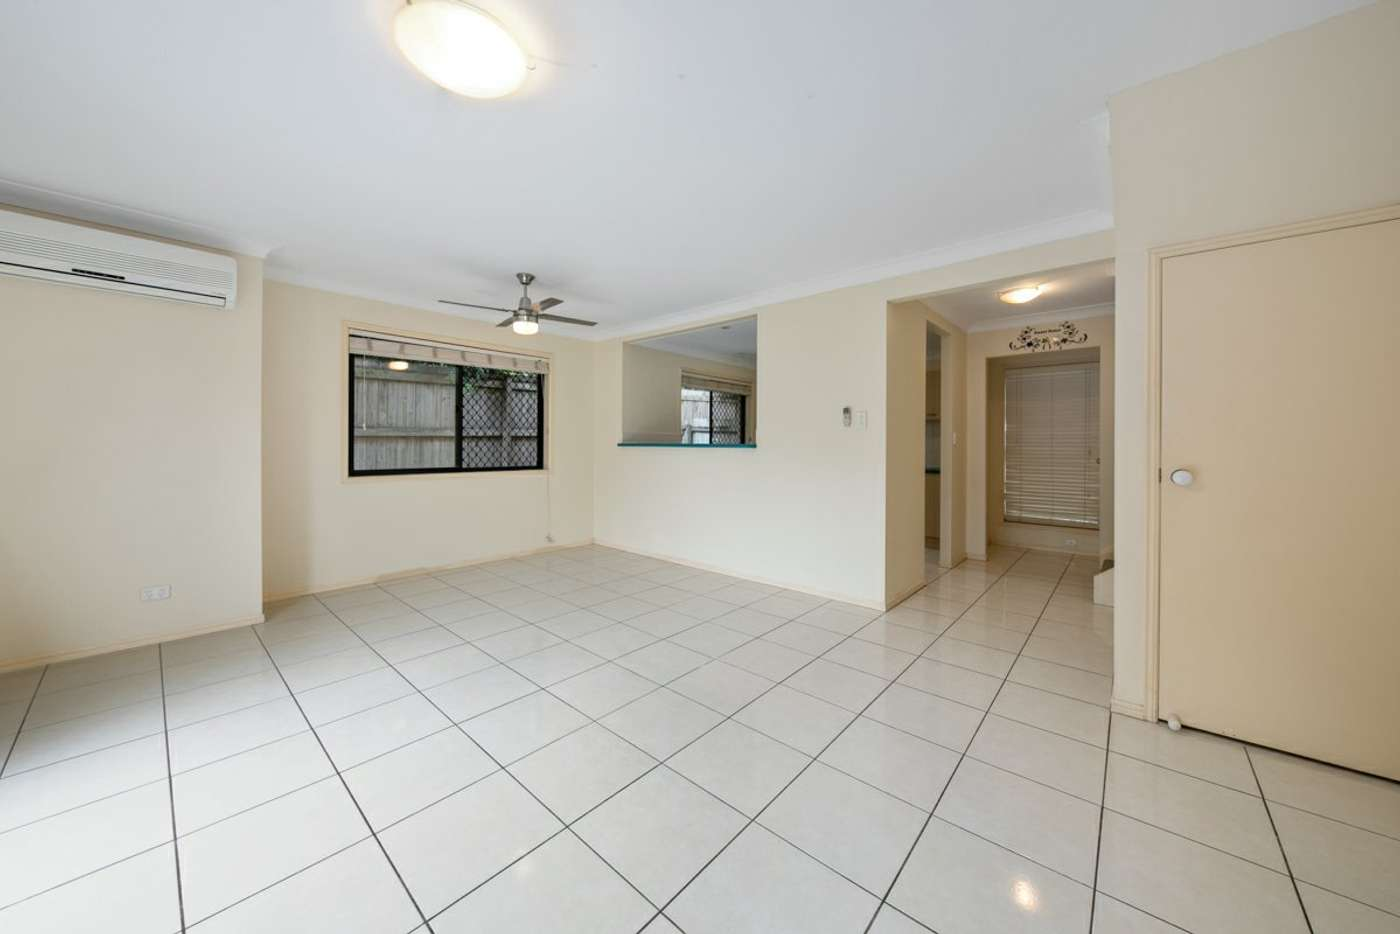 Fifth view of Homely townhouse listing, 3/22 Cardross Street, Yeerongpilly QLD 4105